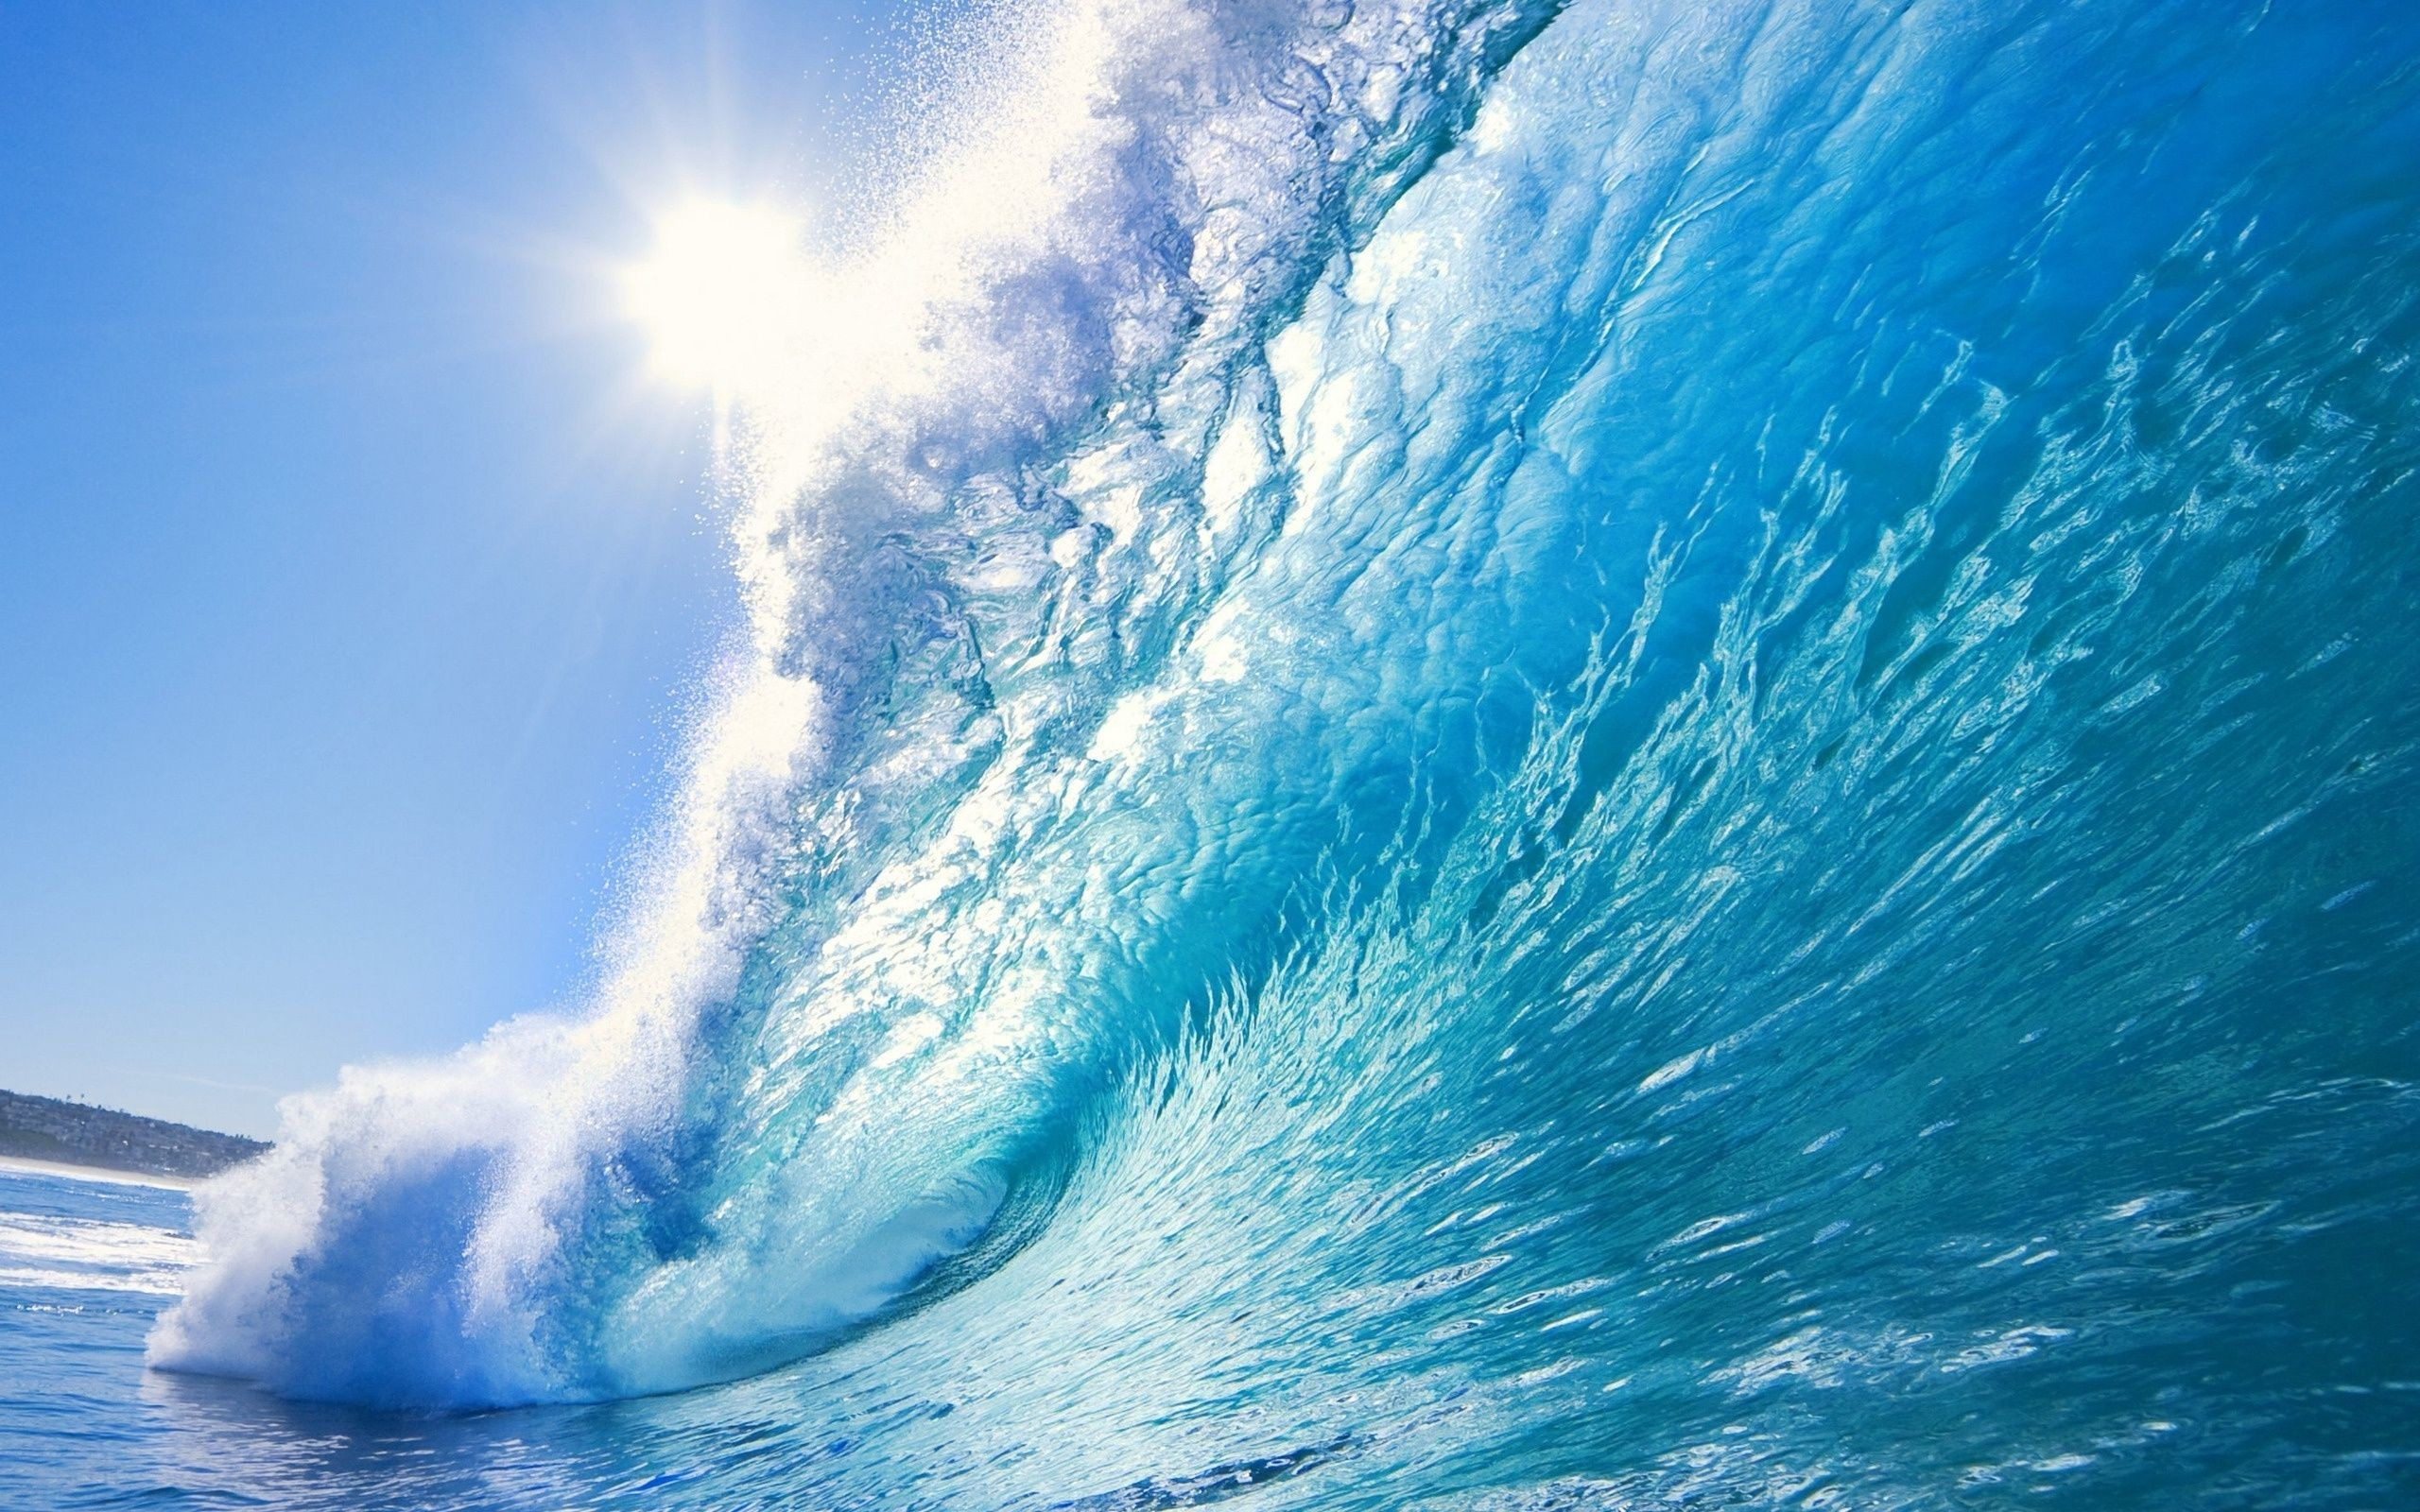 2560x1600 wallpapers of ocean ocean background wallpapers ocean wallpapers .